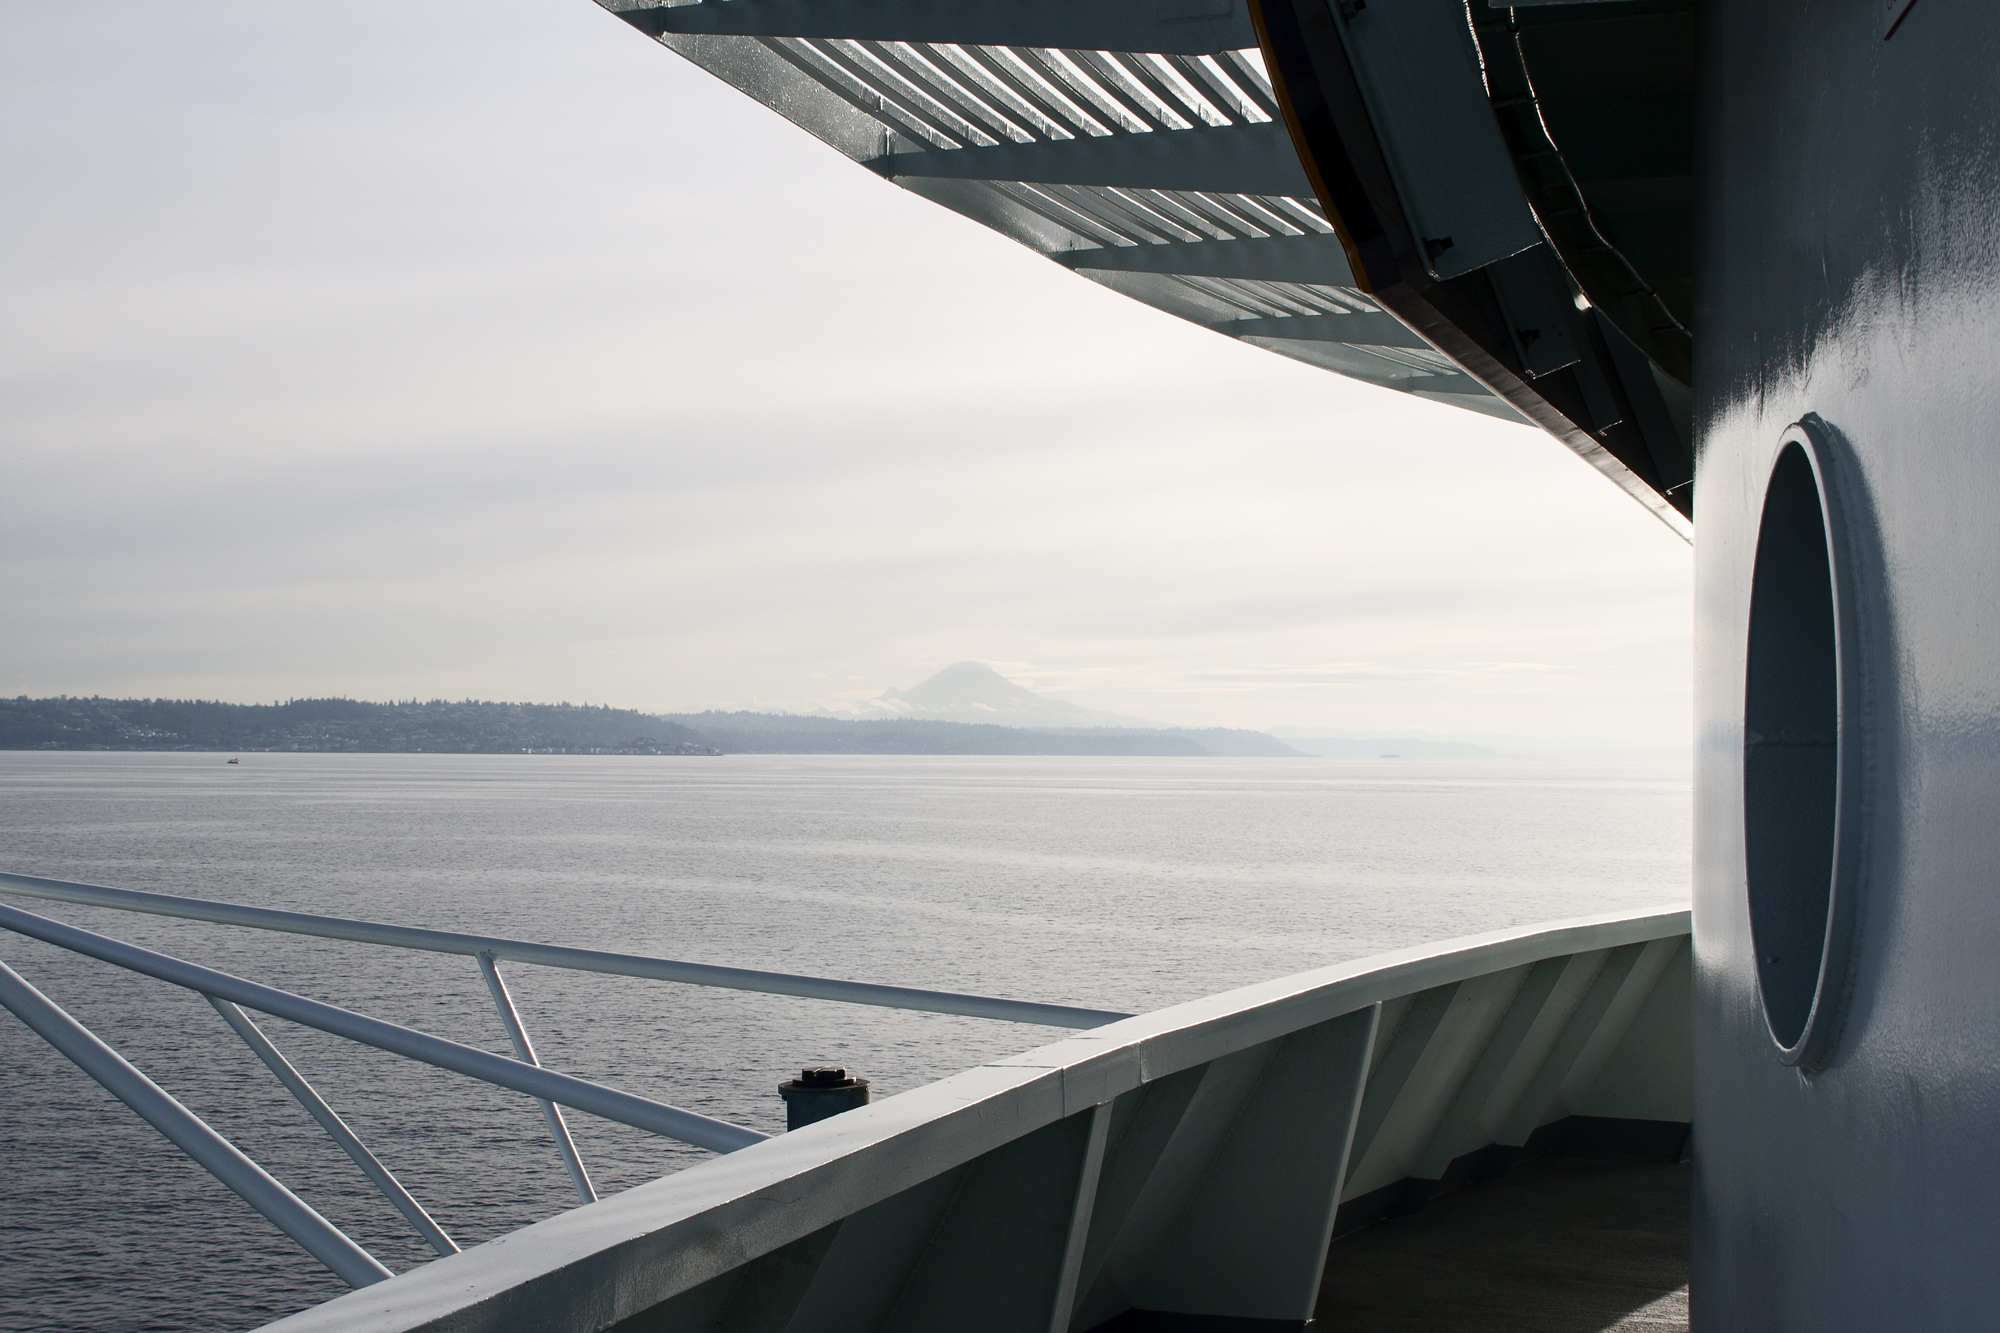 seattle_ferry_with_mountain_and_sea_web.jpg